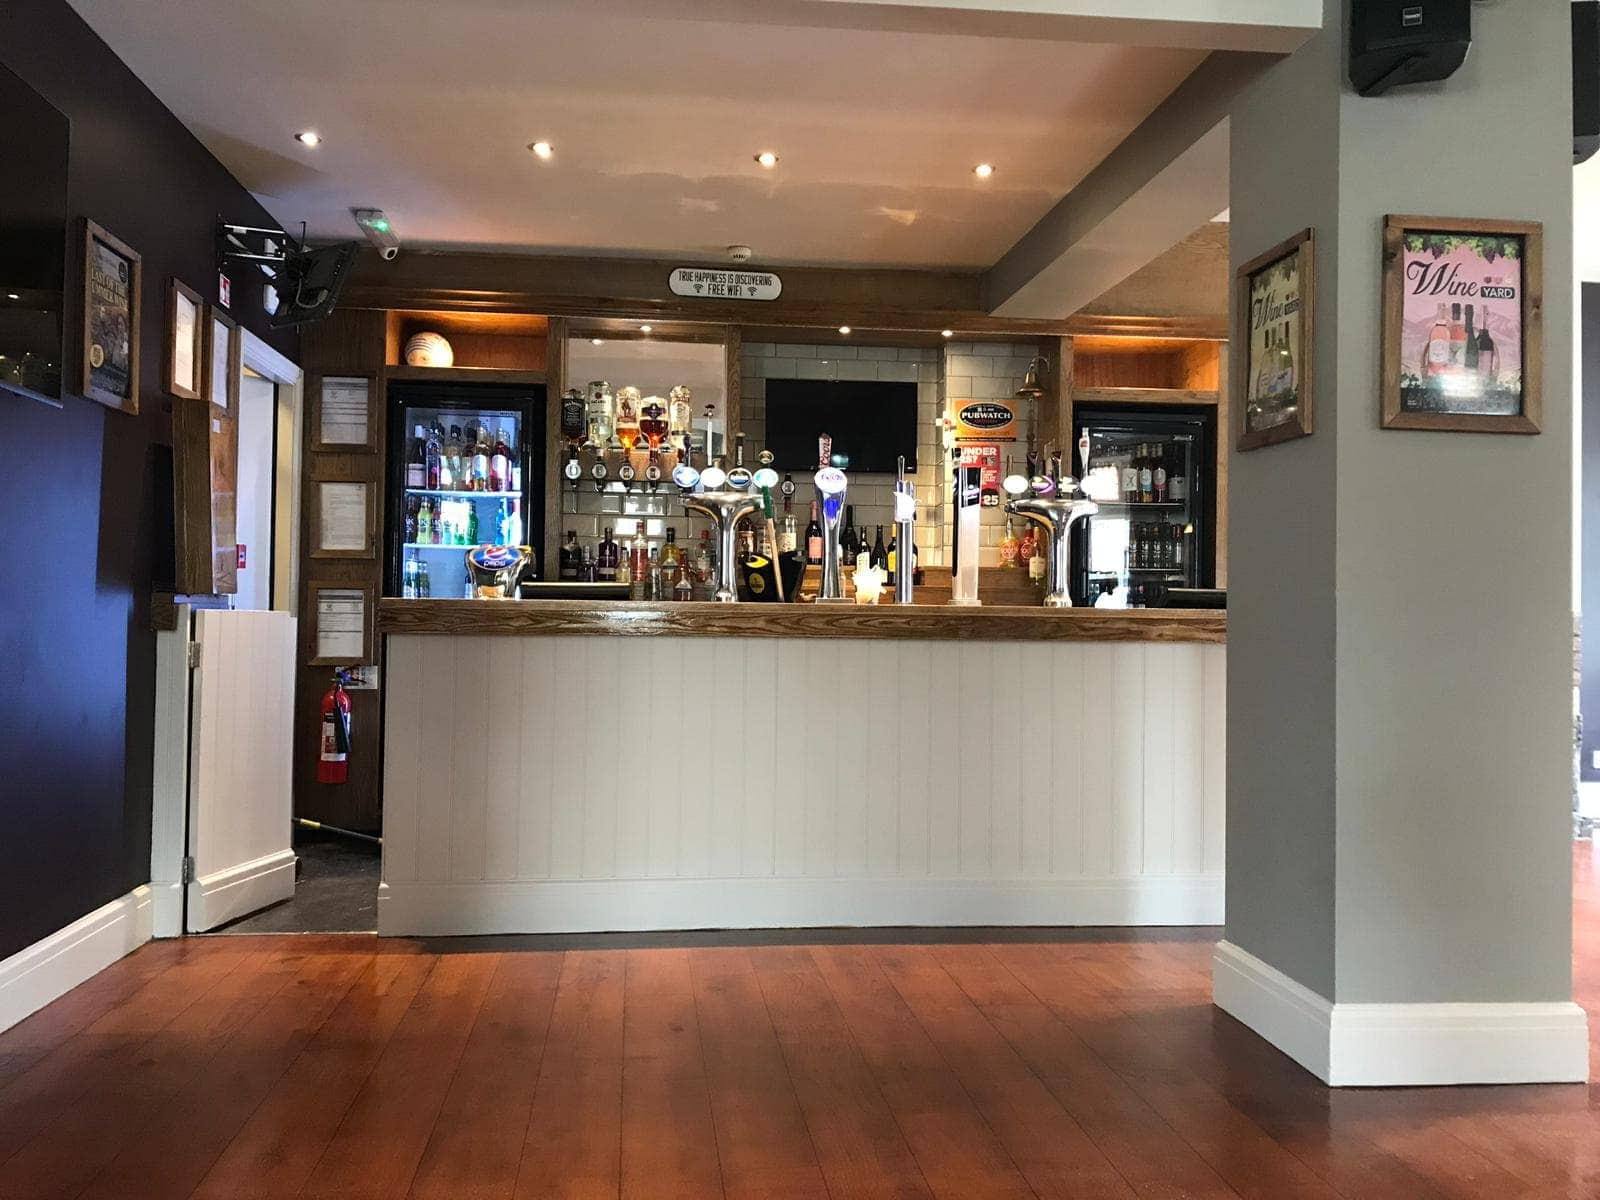 Pub Refurbishment Completed Ahead of Schedule